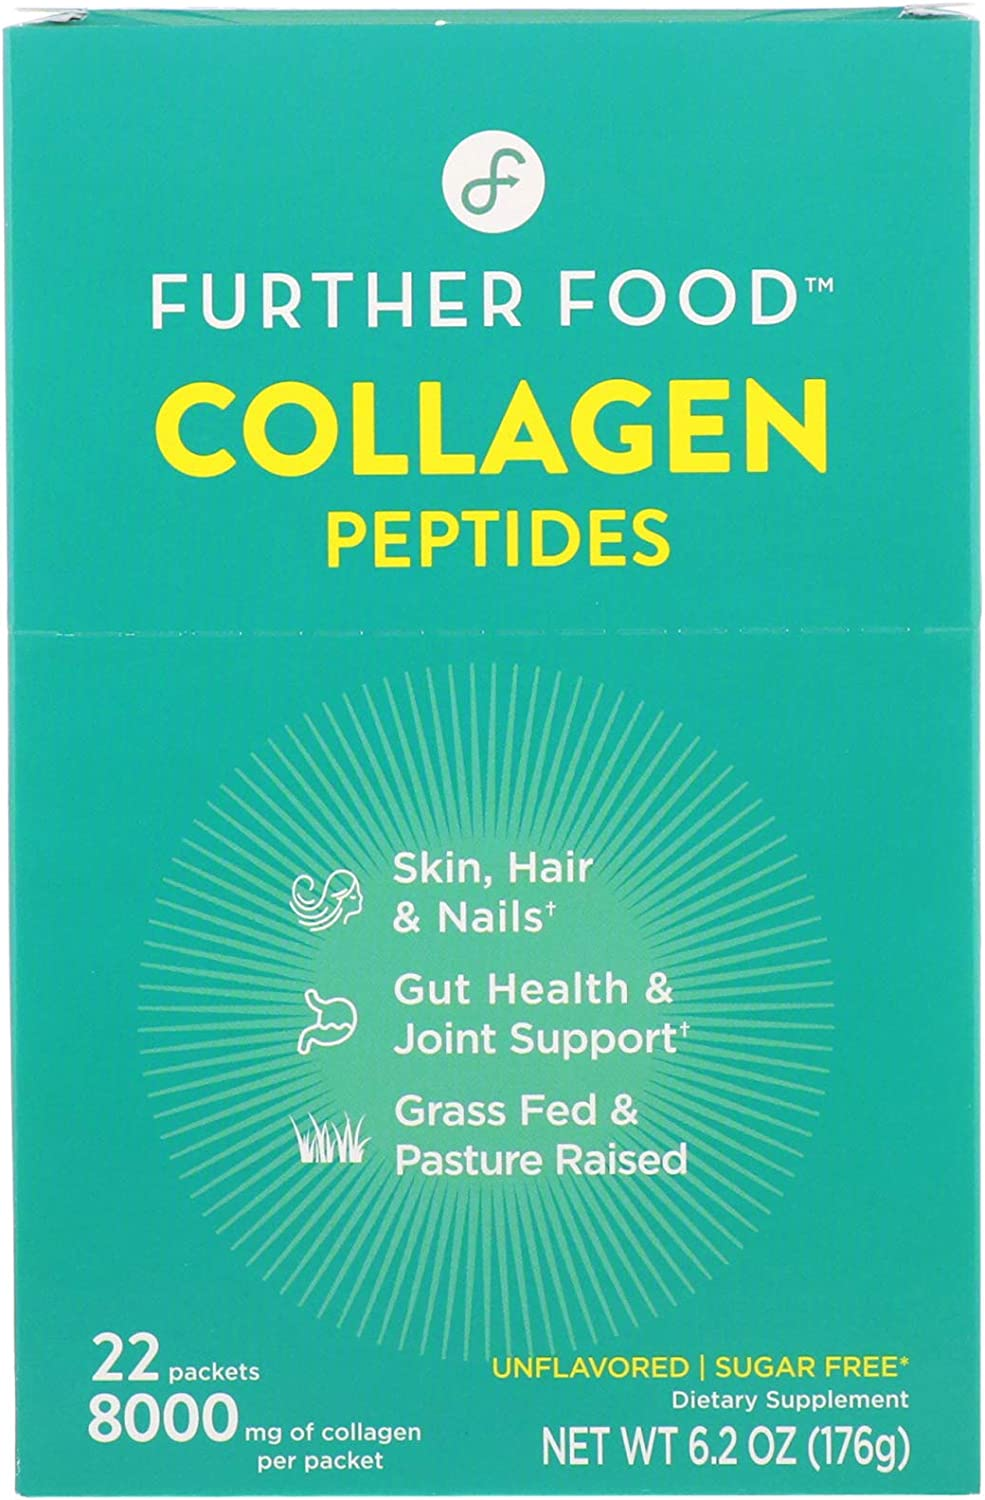 Further Food Collagen Peptides, Unflavored, 22 Packs, 0.28 oz (8 g) Each